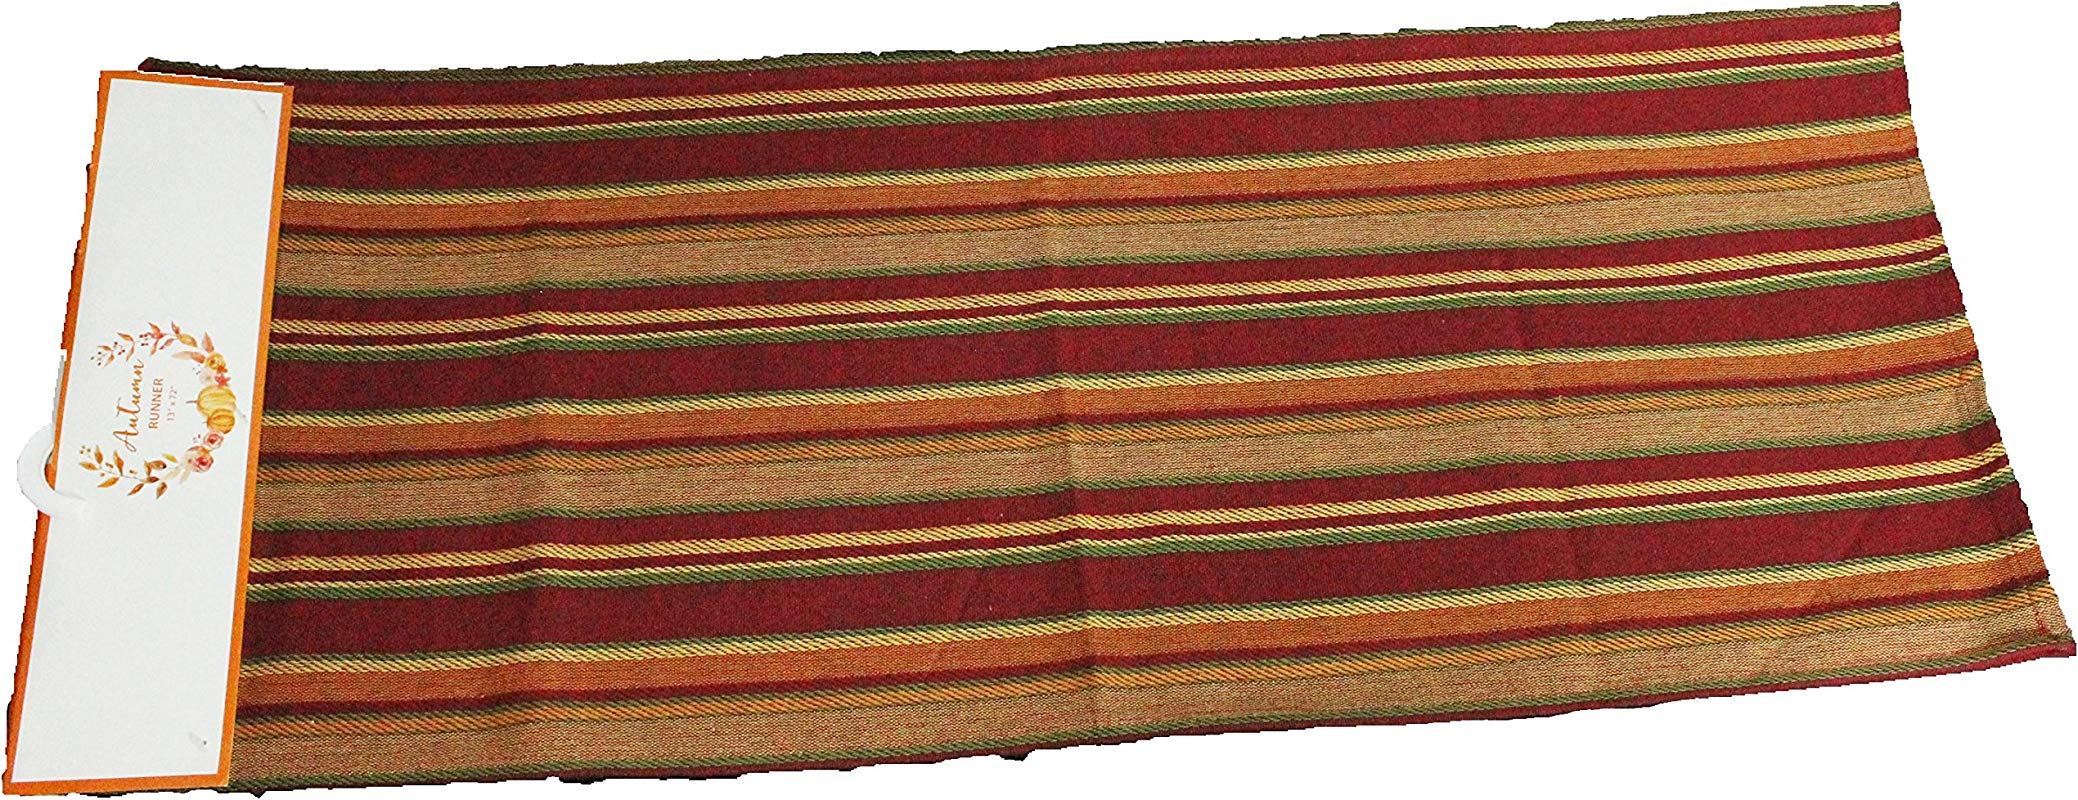 Twisted Anchor Trading Co Fall Table Runner Terracotta Stripe Casual Cotton Fall Table Runners 72 Inch X 13